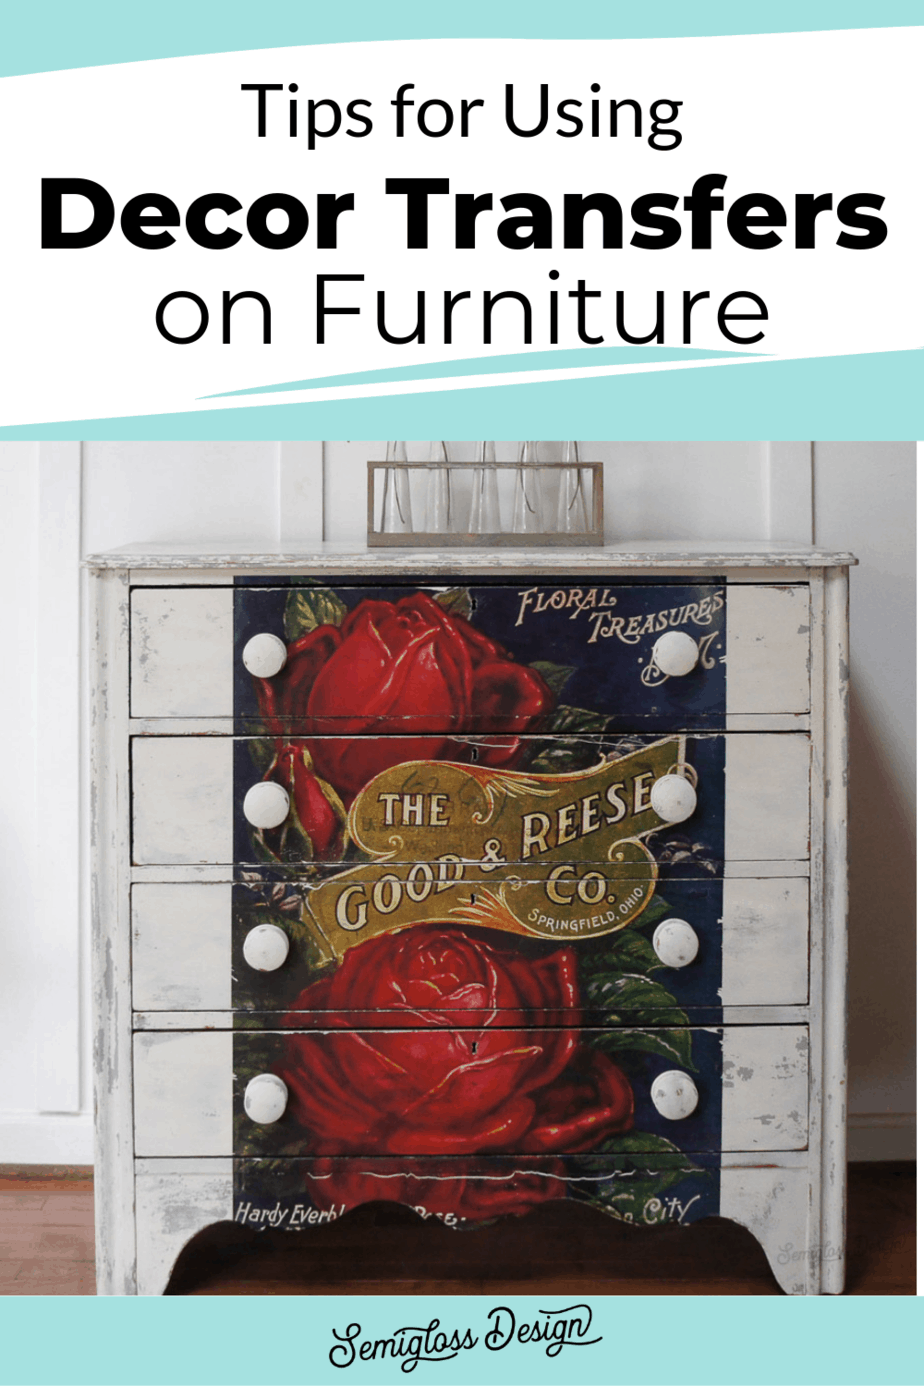 tips for using decor transfers on furniture